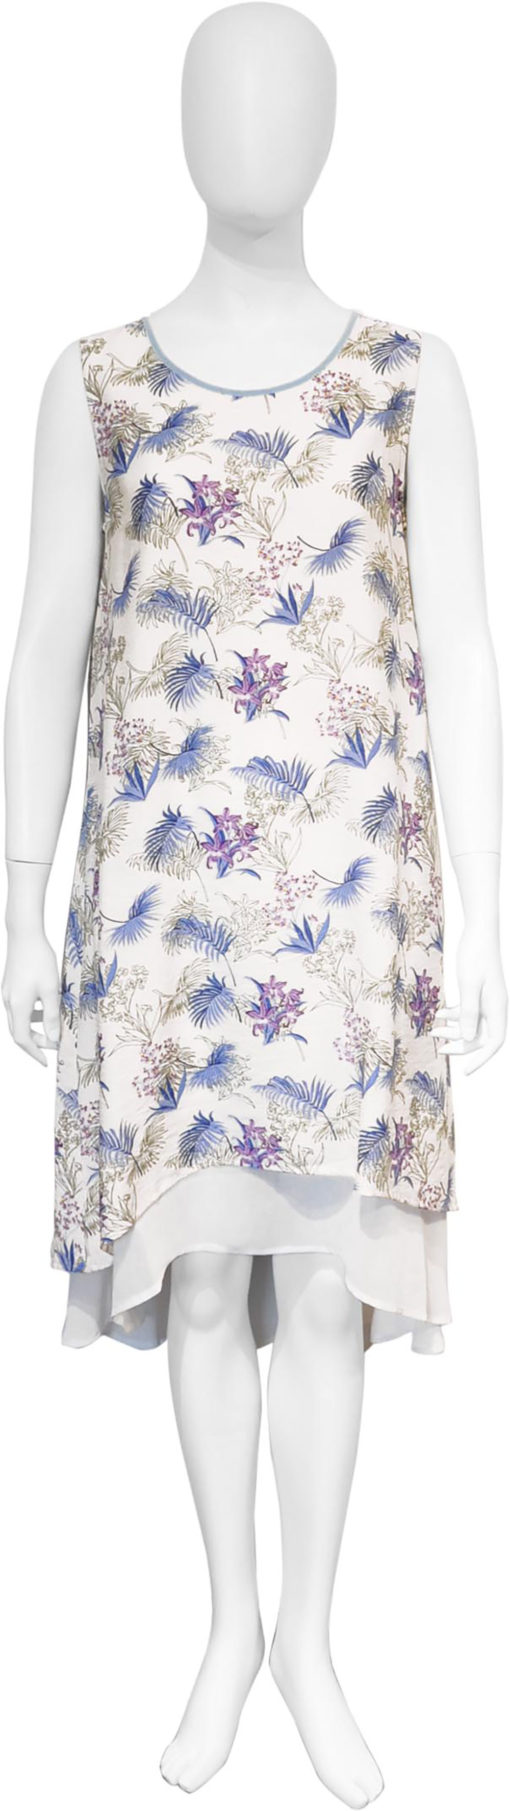 feather printed blue dress- front